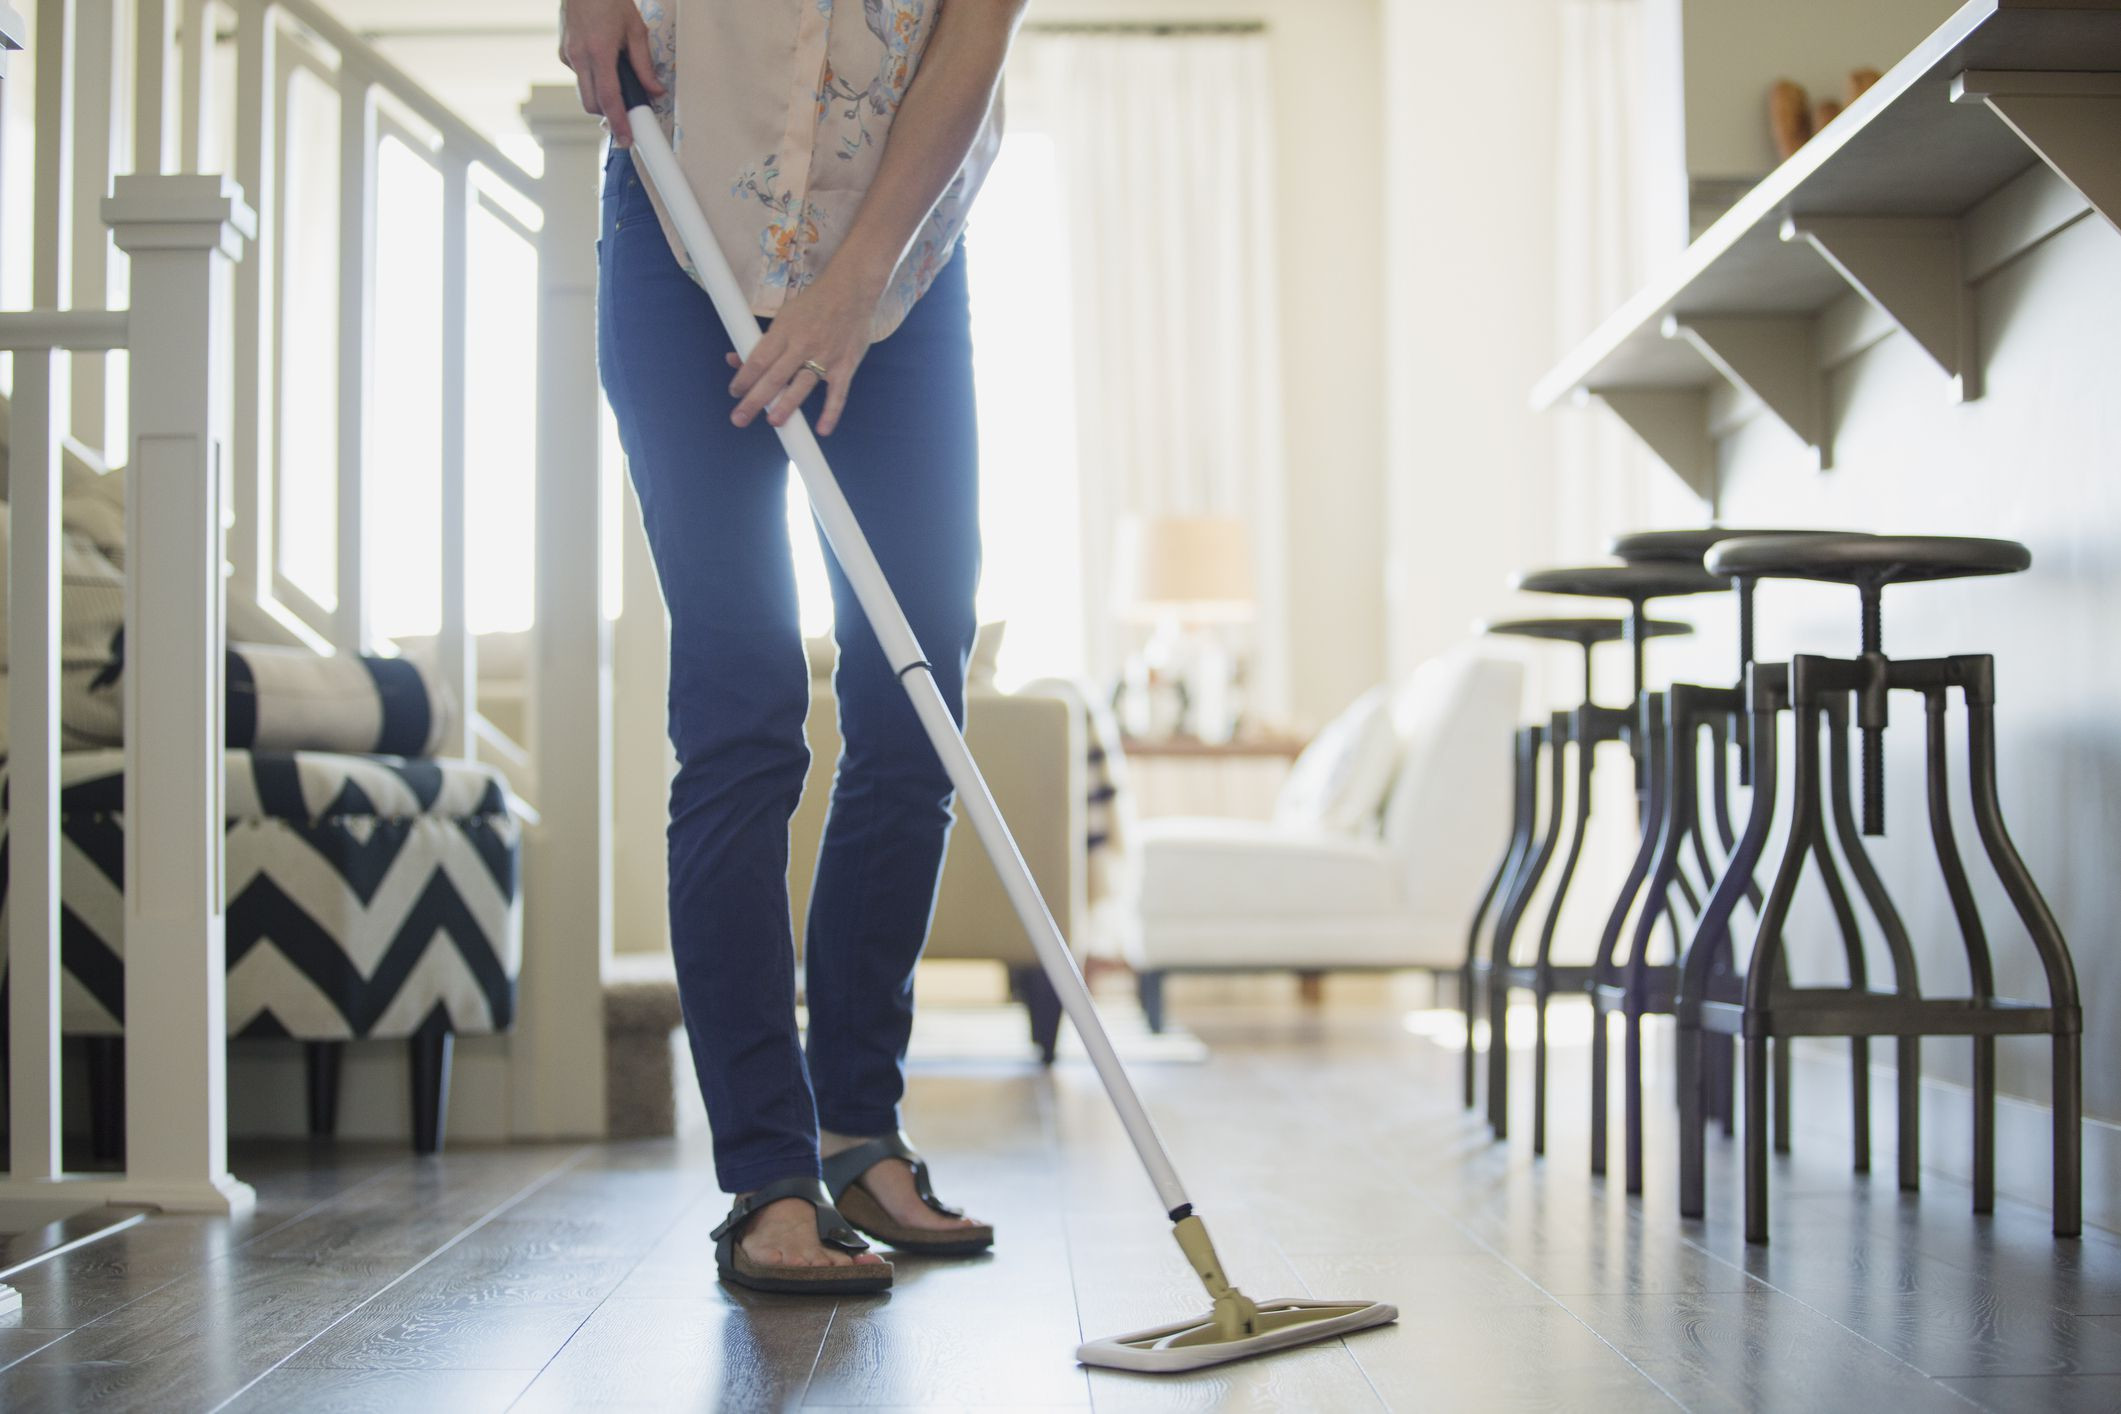 bona hardwood floor cleaner calgary of the 8 best flat mops to buy in 2018 regarding flat mop 607041561 58ea83b95f9b58ef7e0e5d44